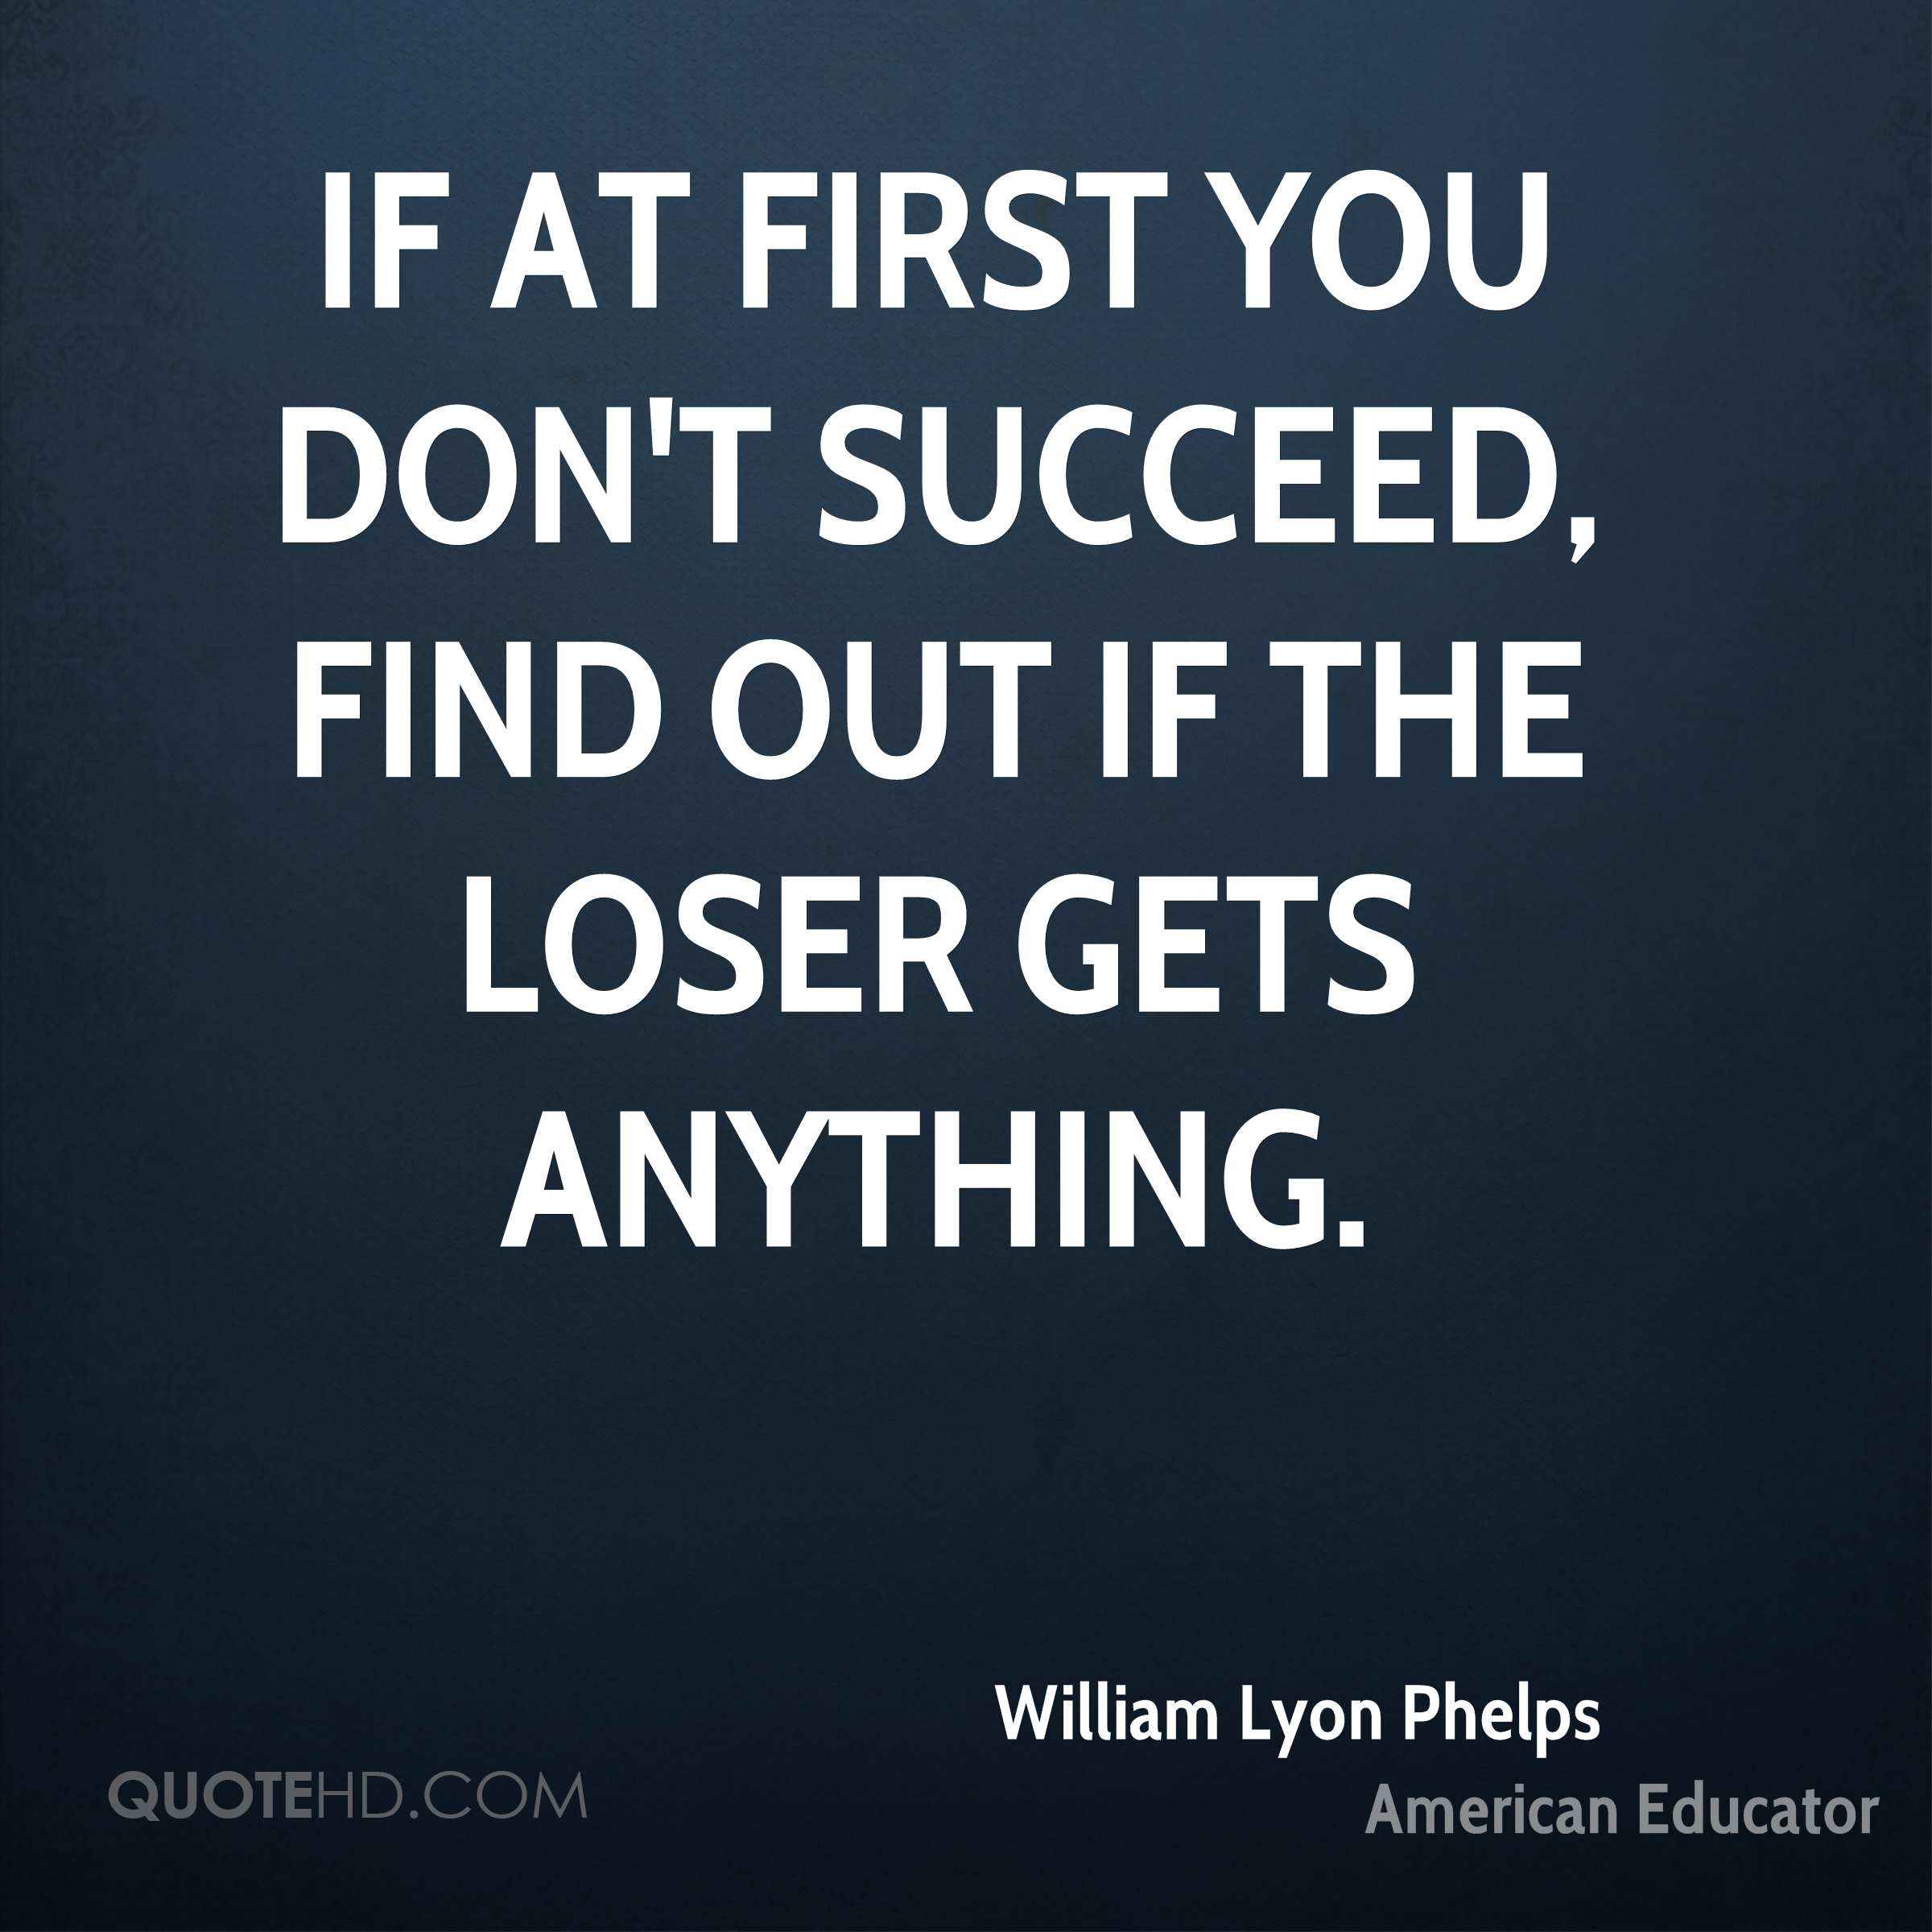 If at first you don't succeed, find out if the loser gets anything.